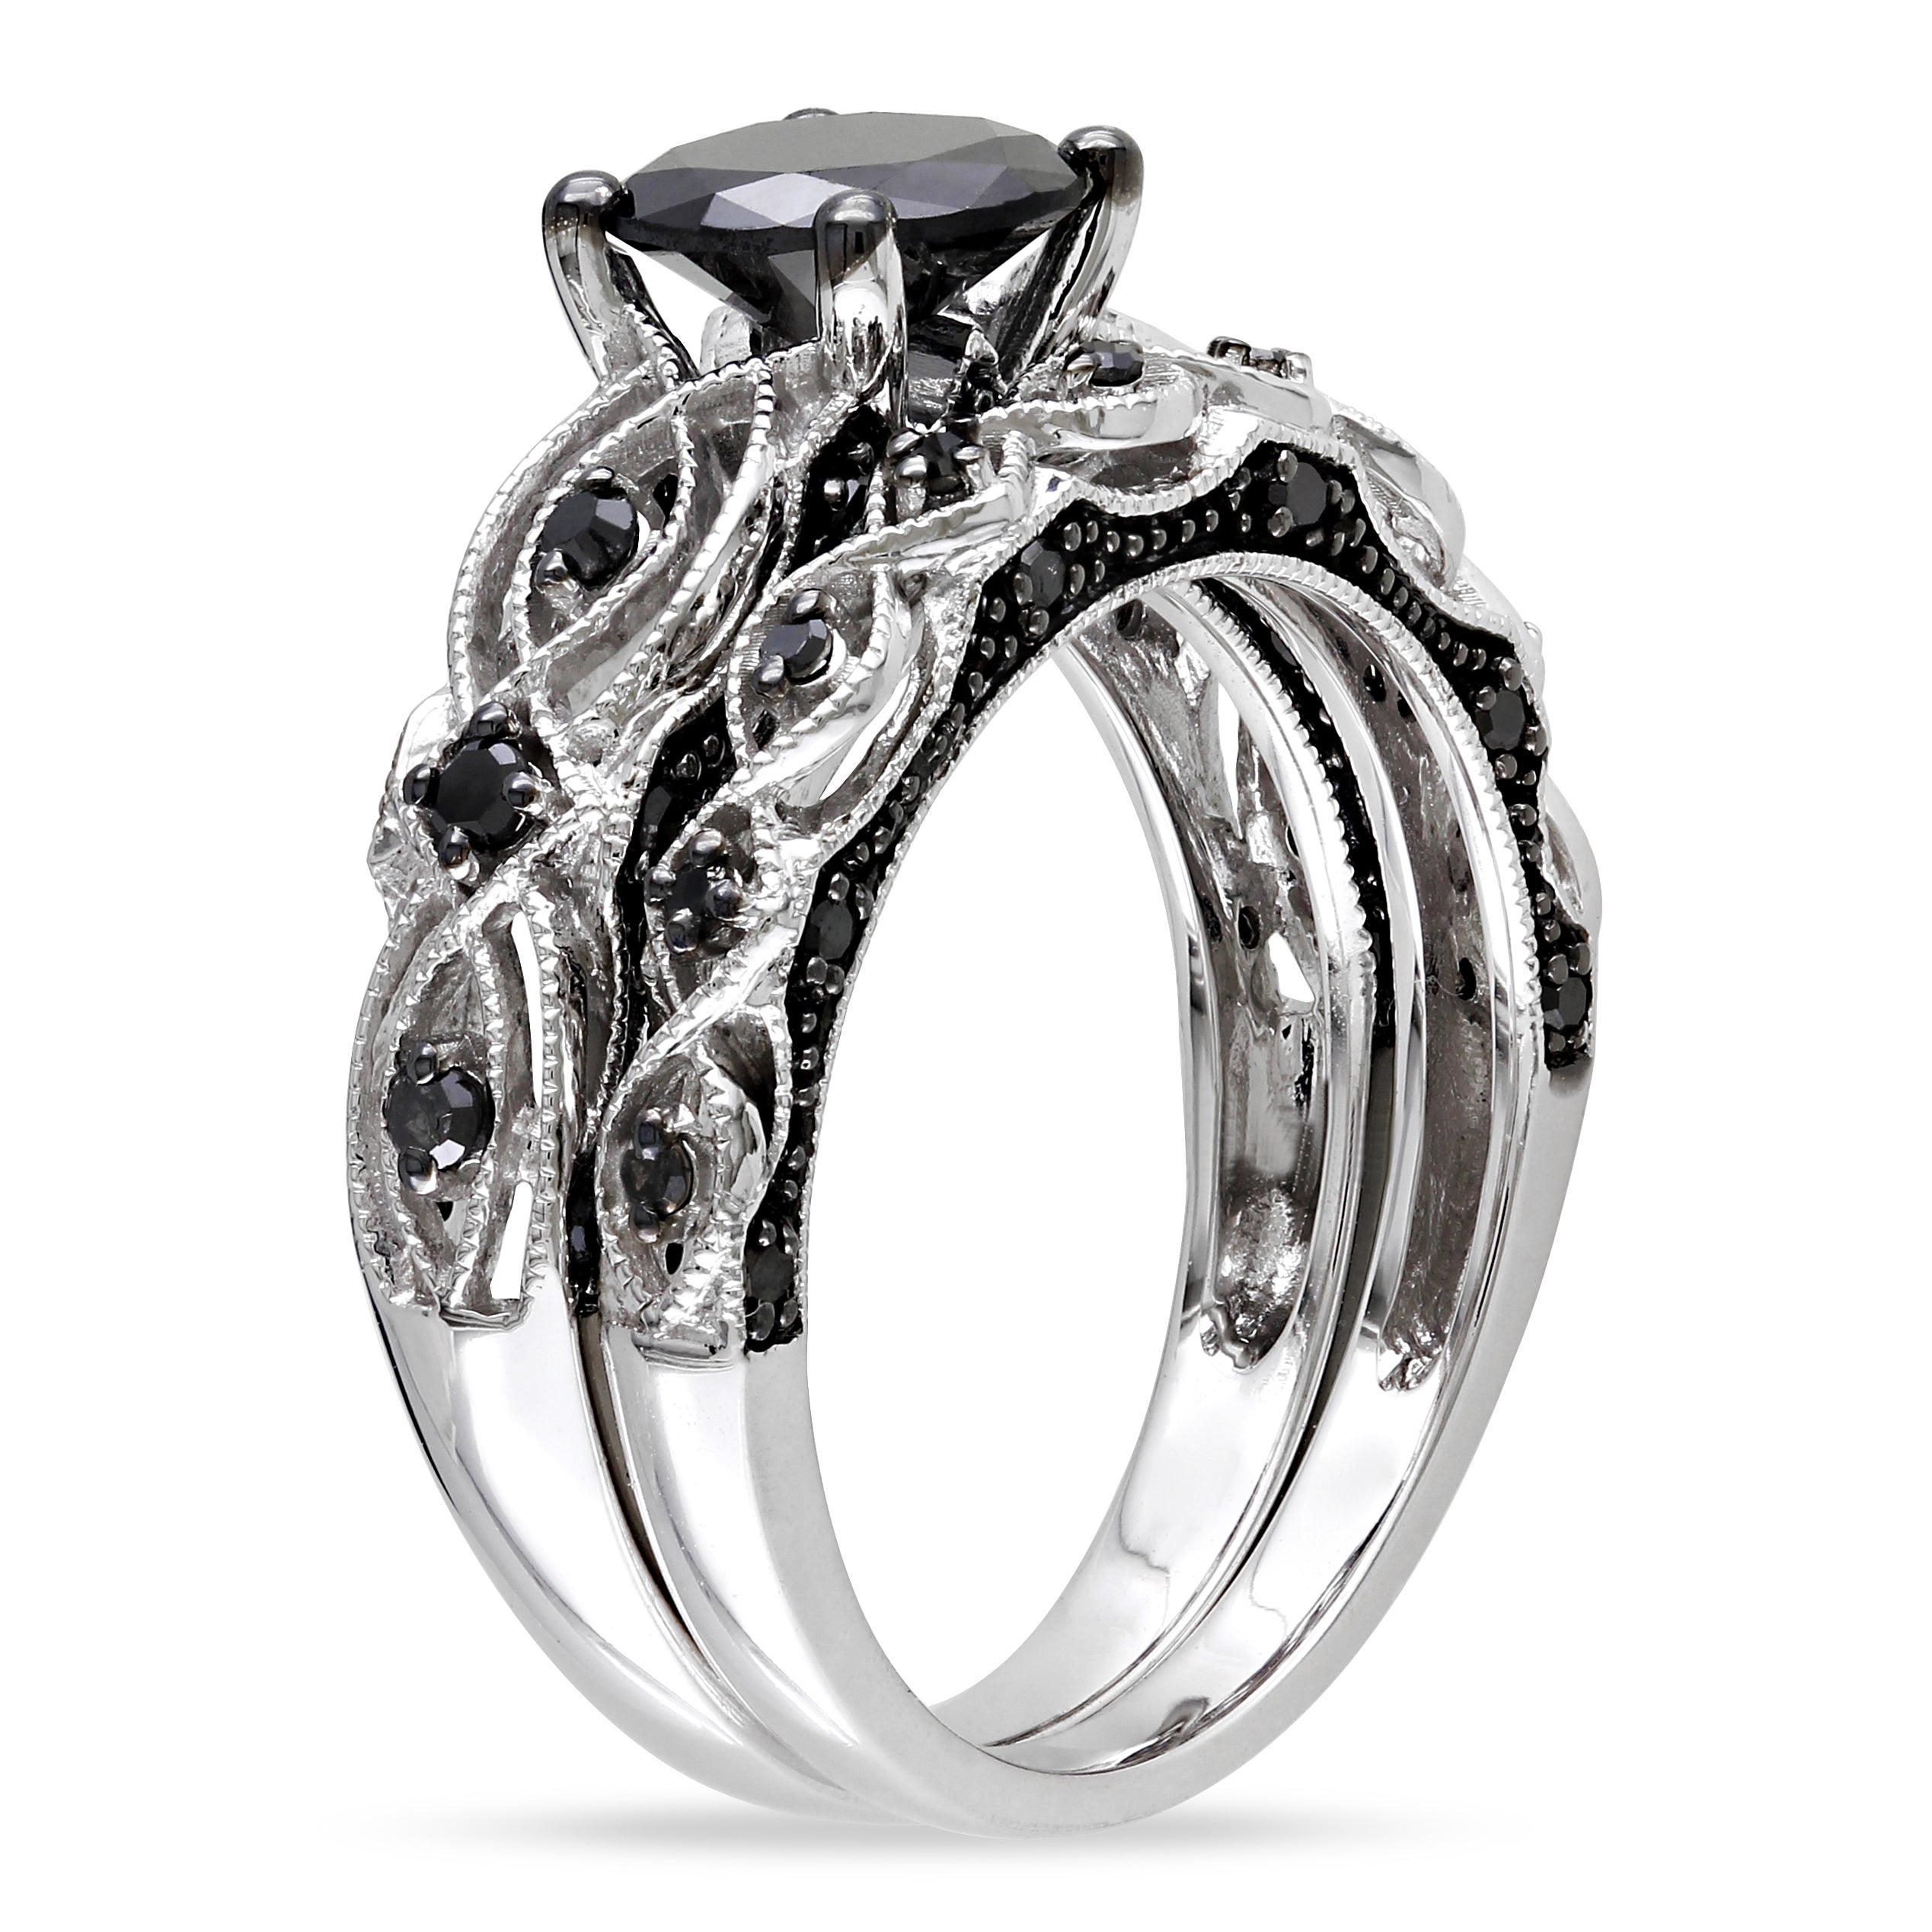 engagement diamond rings co black halo soha products kyoto ring bands symmetry